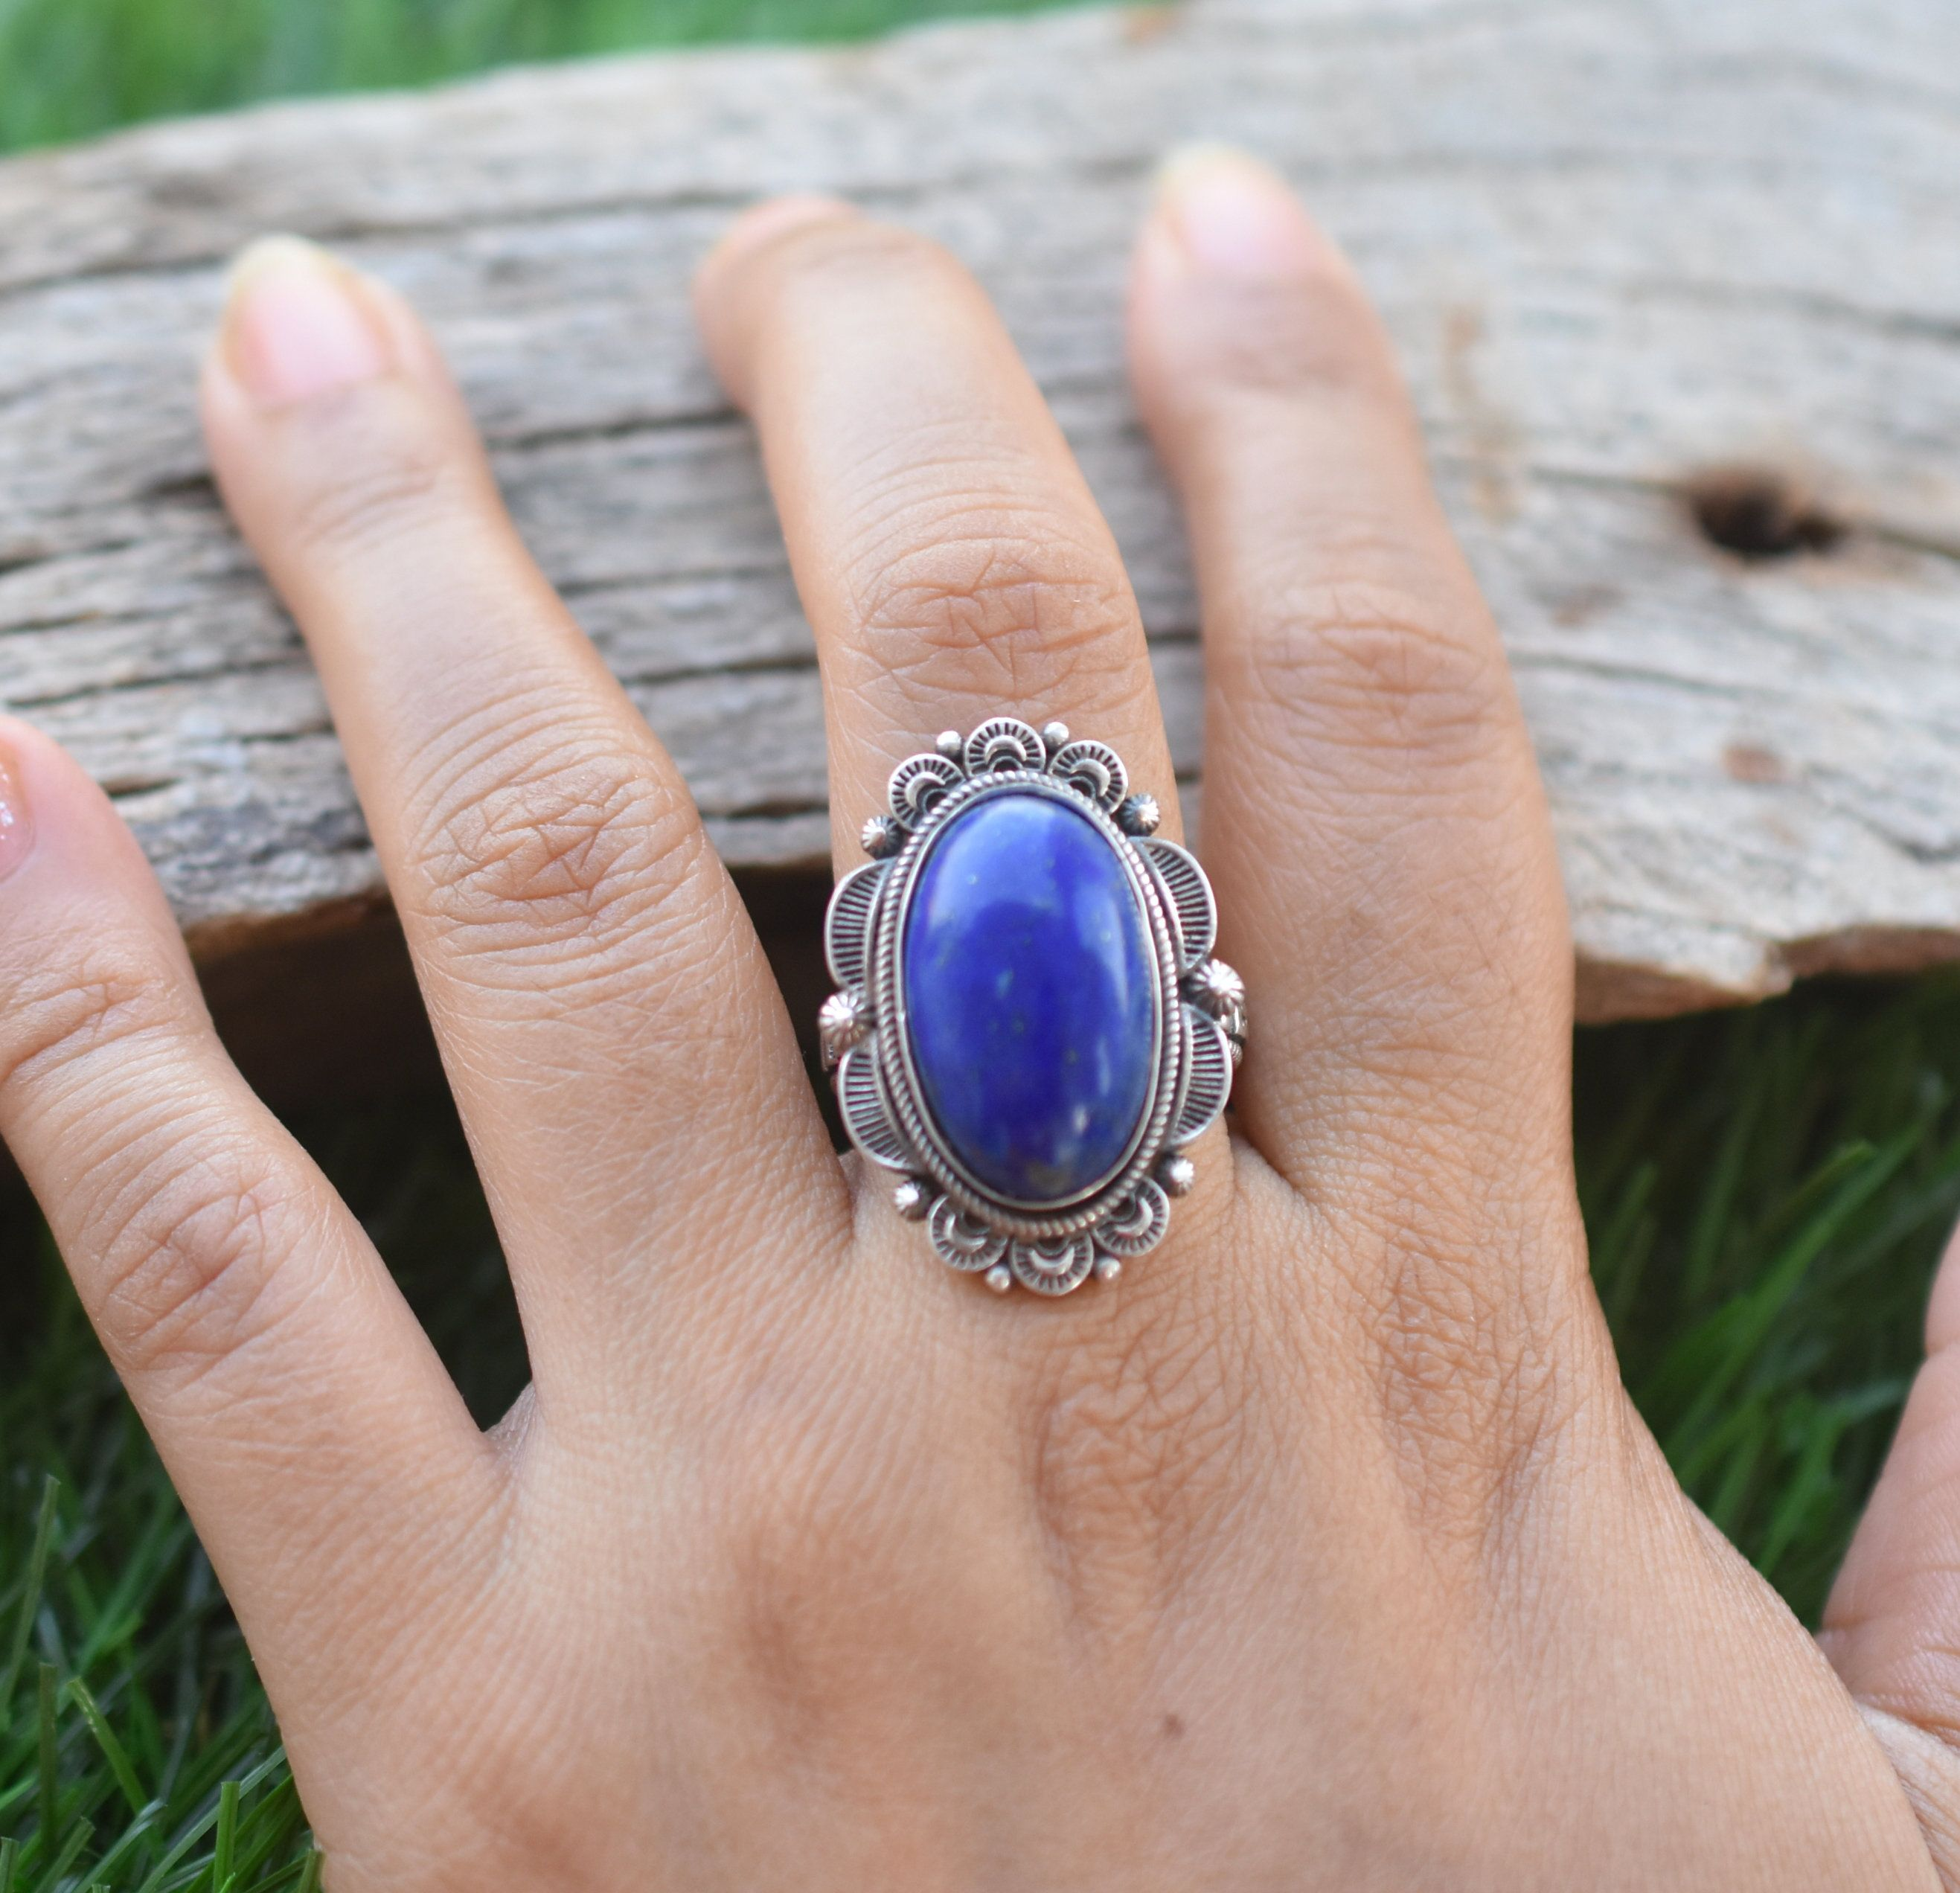 Blue Lapis Ring,Sterling Silver Ring,Gemstone Ring,Boho Ring,Handmade Ring,Blue Stone Ring,Lapis Lazuli Jewelry,Statement Ring,Gift For Her